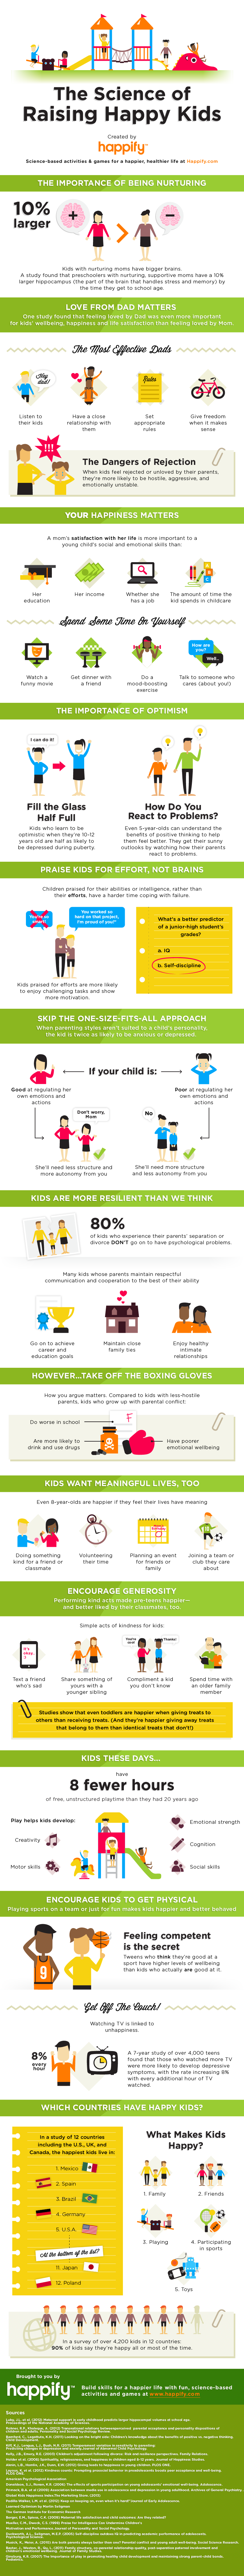 The Science of Raising Happy Kids #infographic